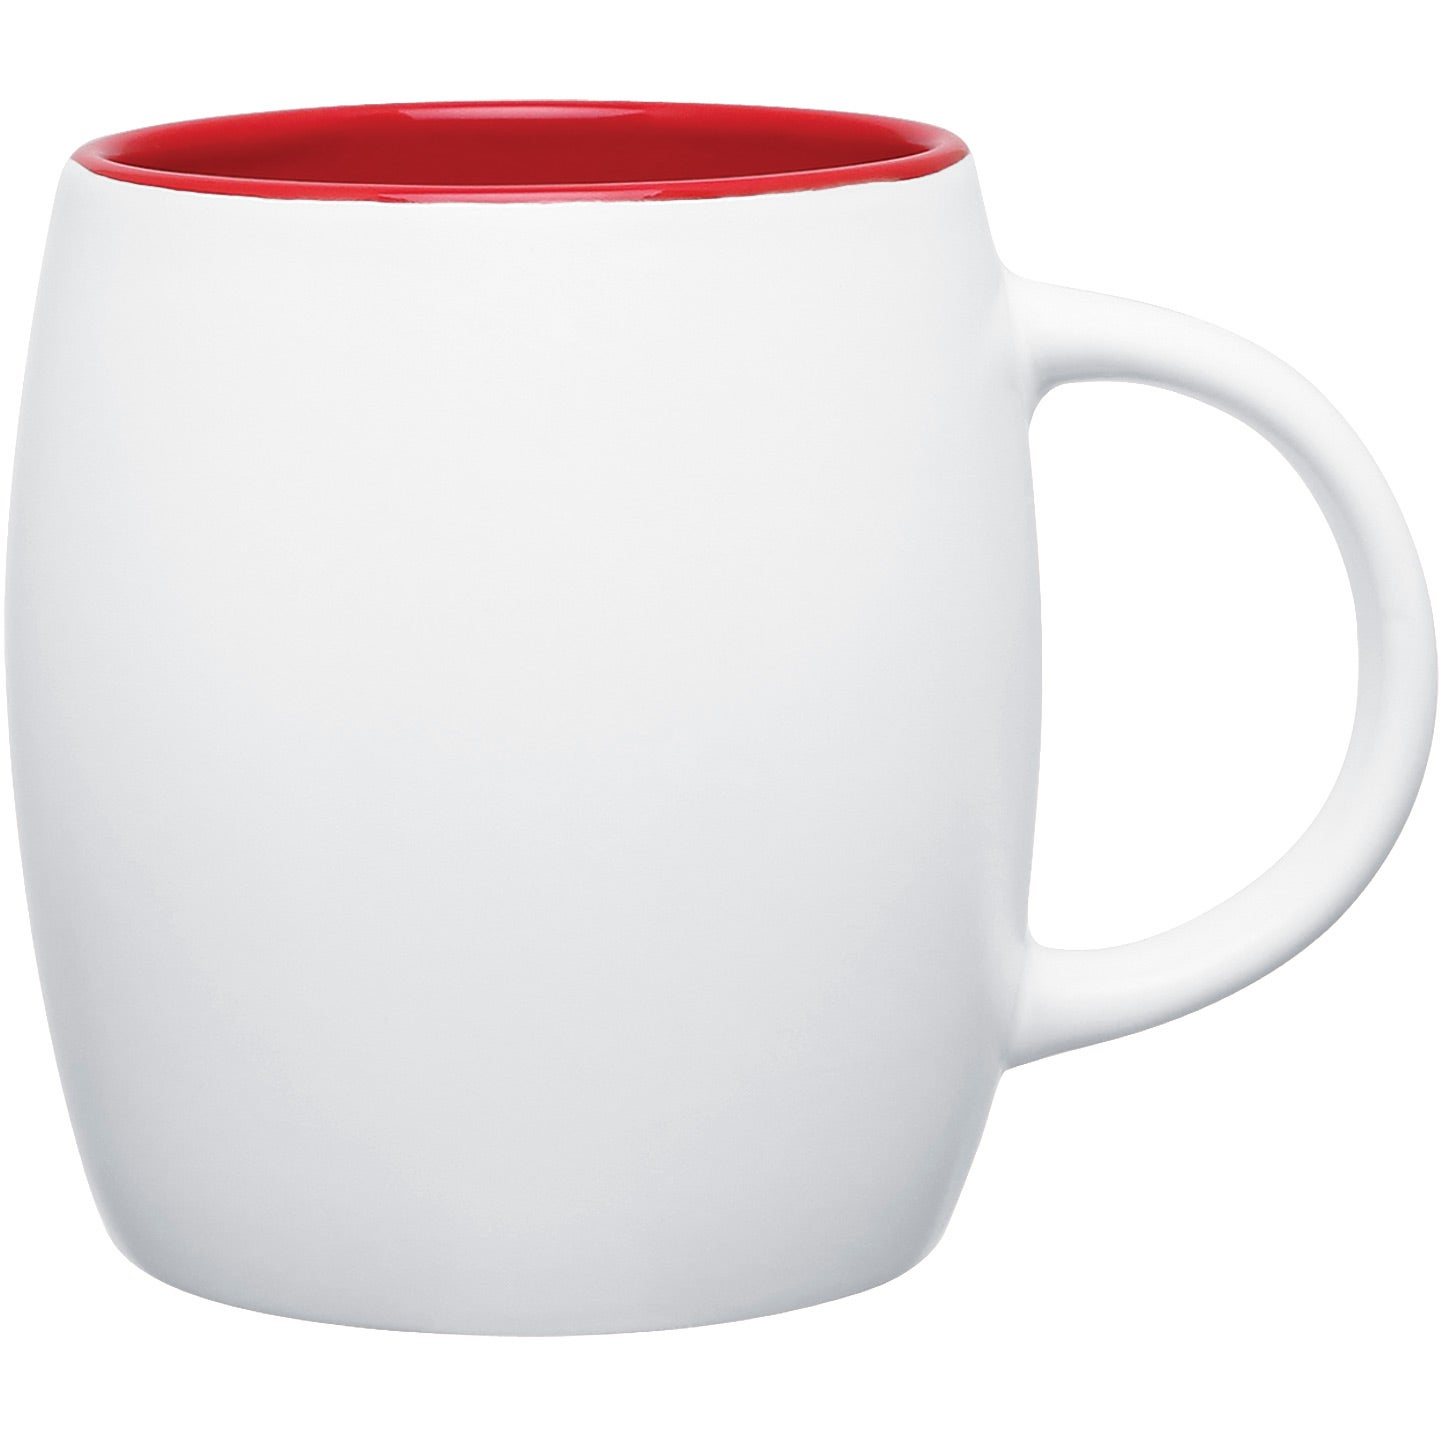 Promotional 14 Oz Matte White Joe Ceramic Mugs With Custom Logo For 3 68 Ea